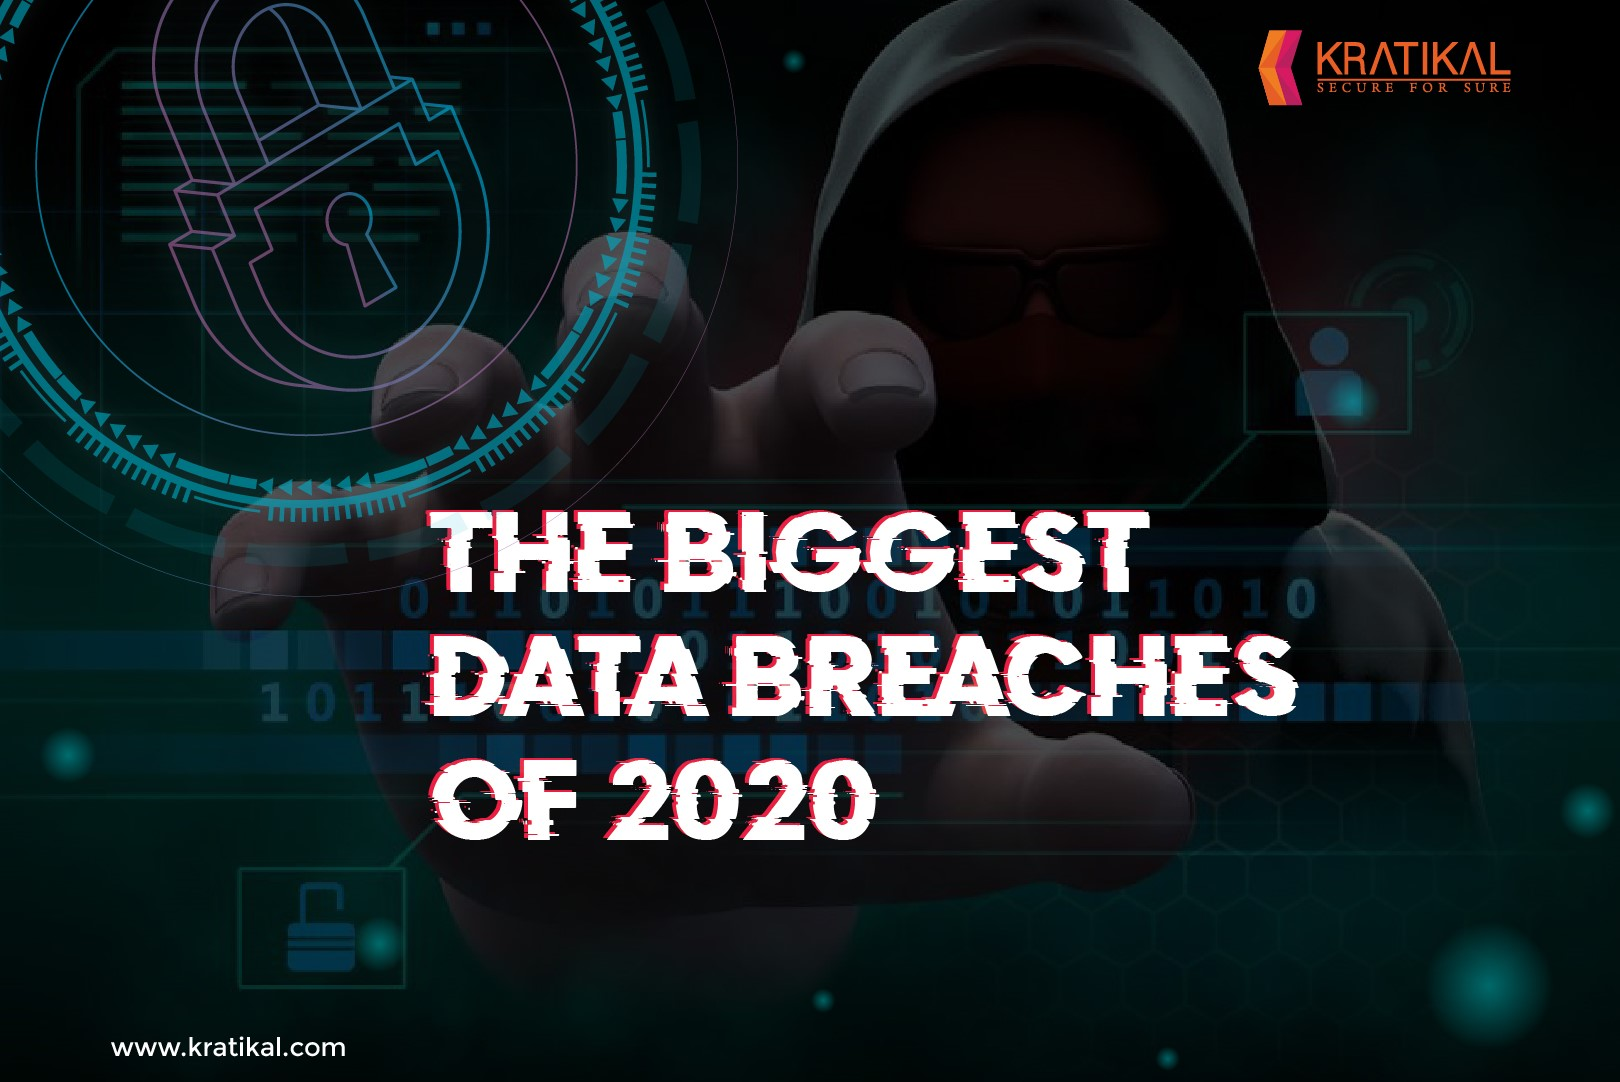 Data-breaches-2020-1